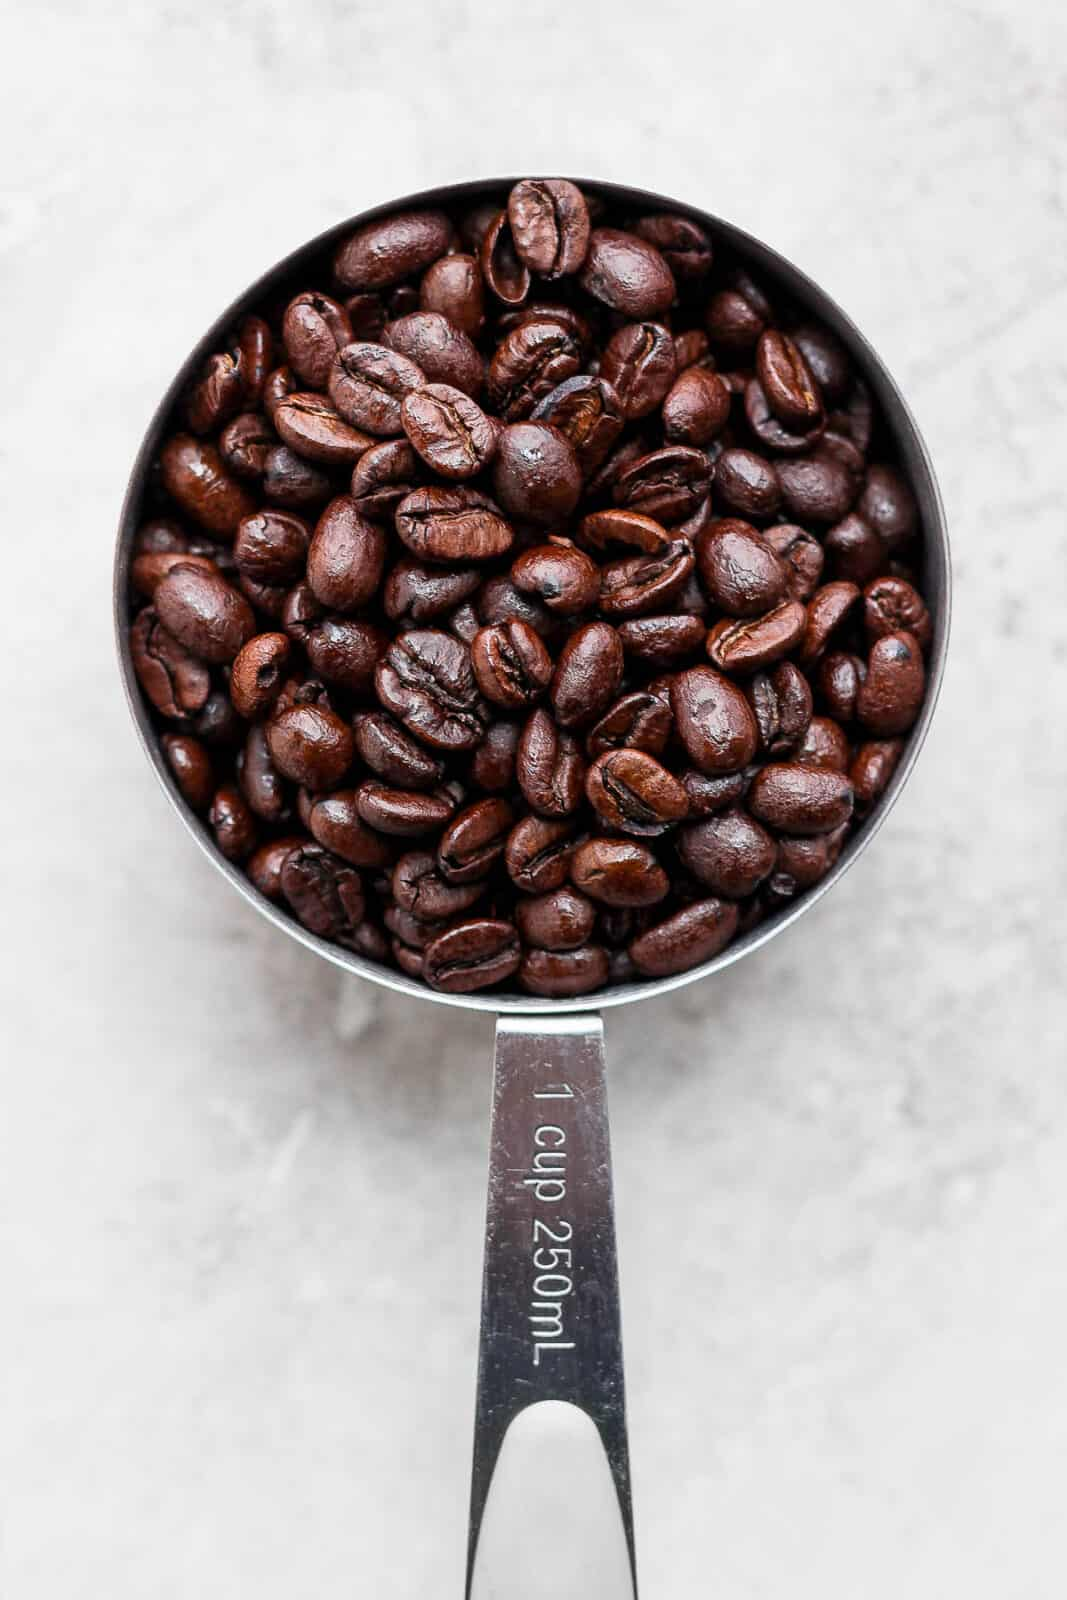 A measuring cup filled with whole coffee beans.